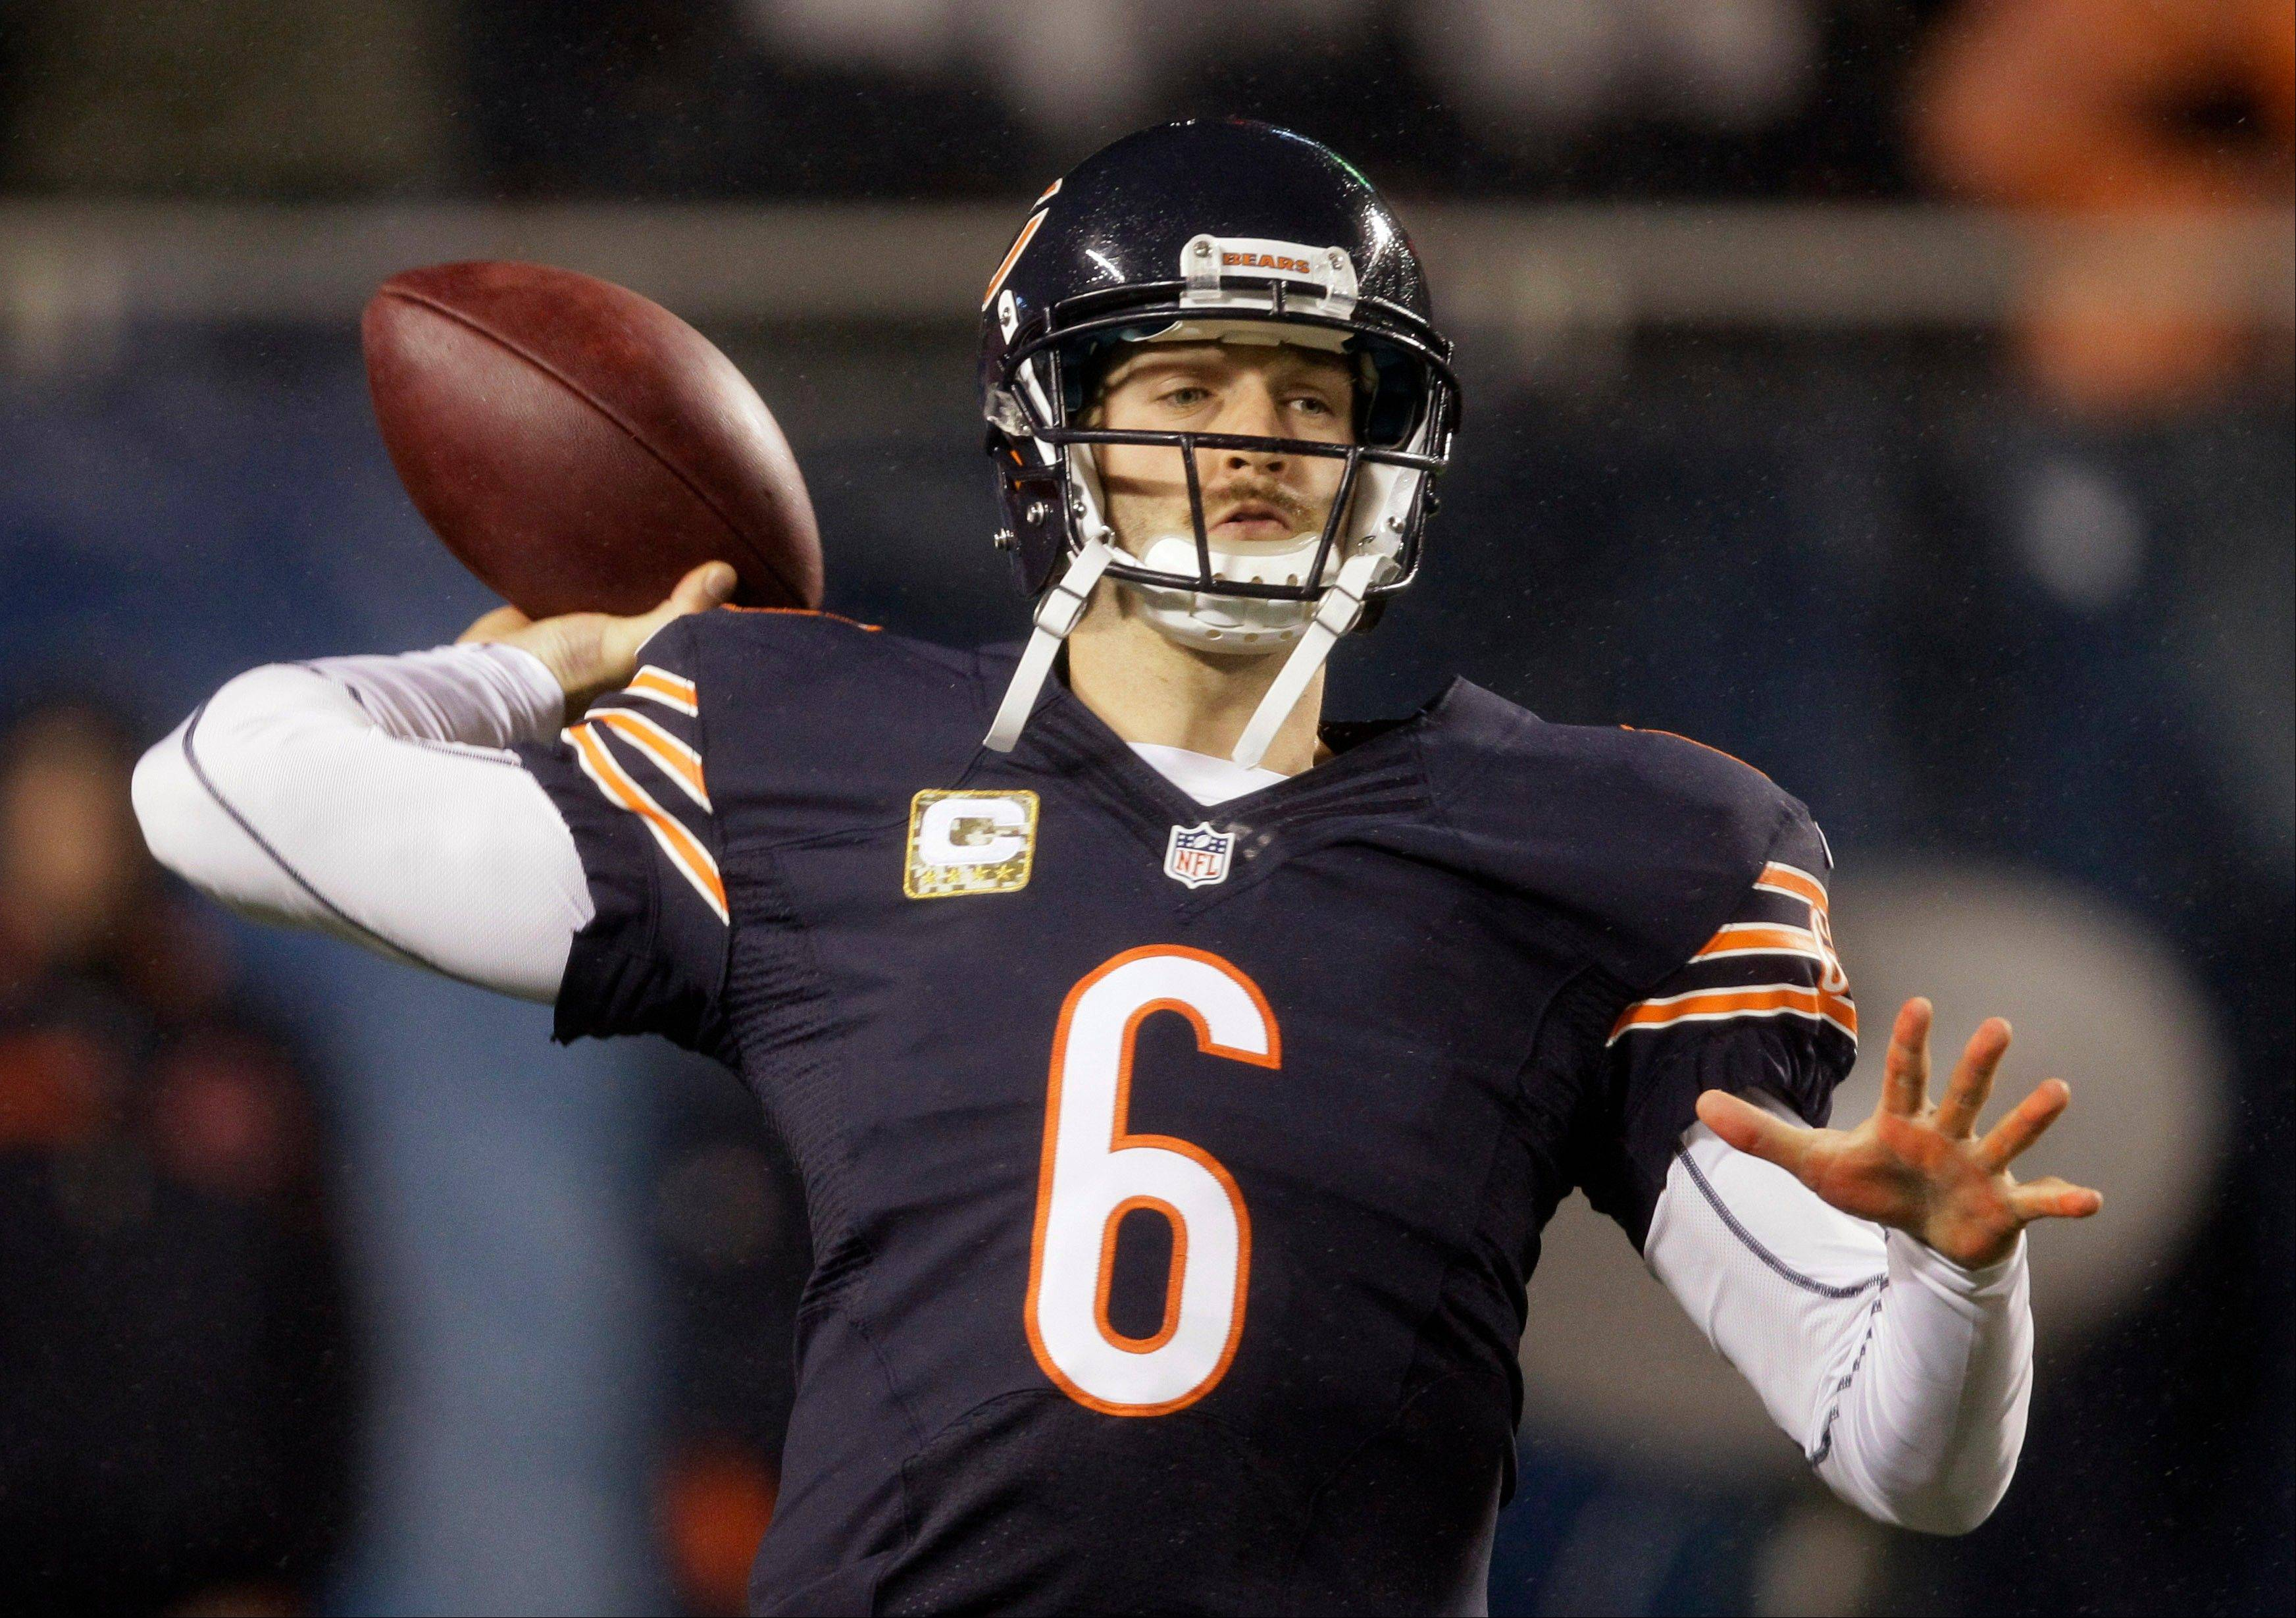 Bears quarterback Jay Cutler has completed the concussion protocol tests and is cleared to play, according to a report at nfl.com.